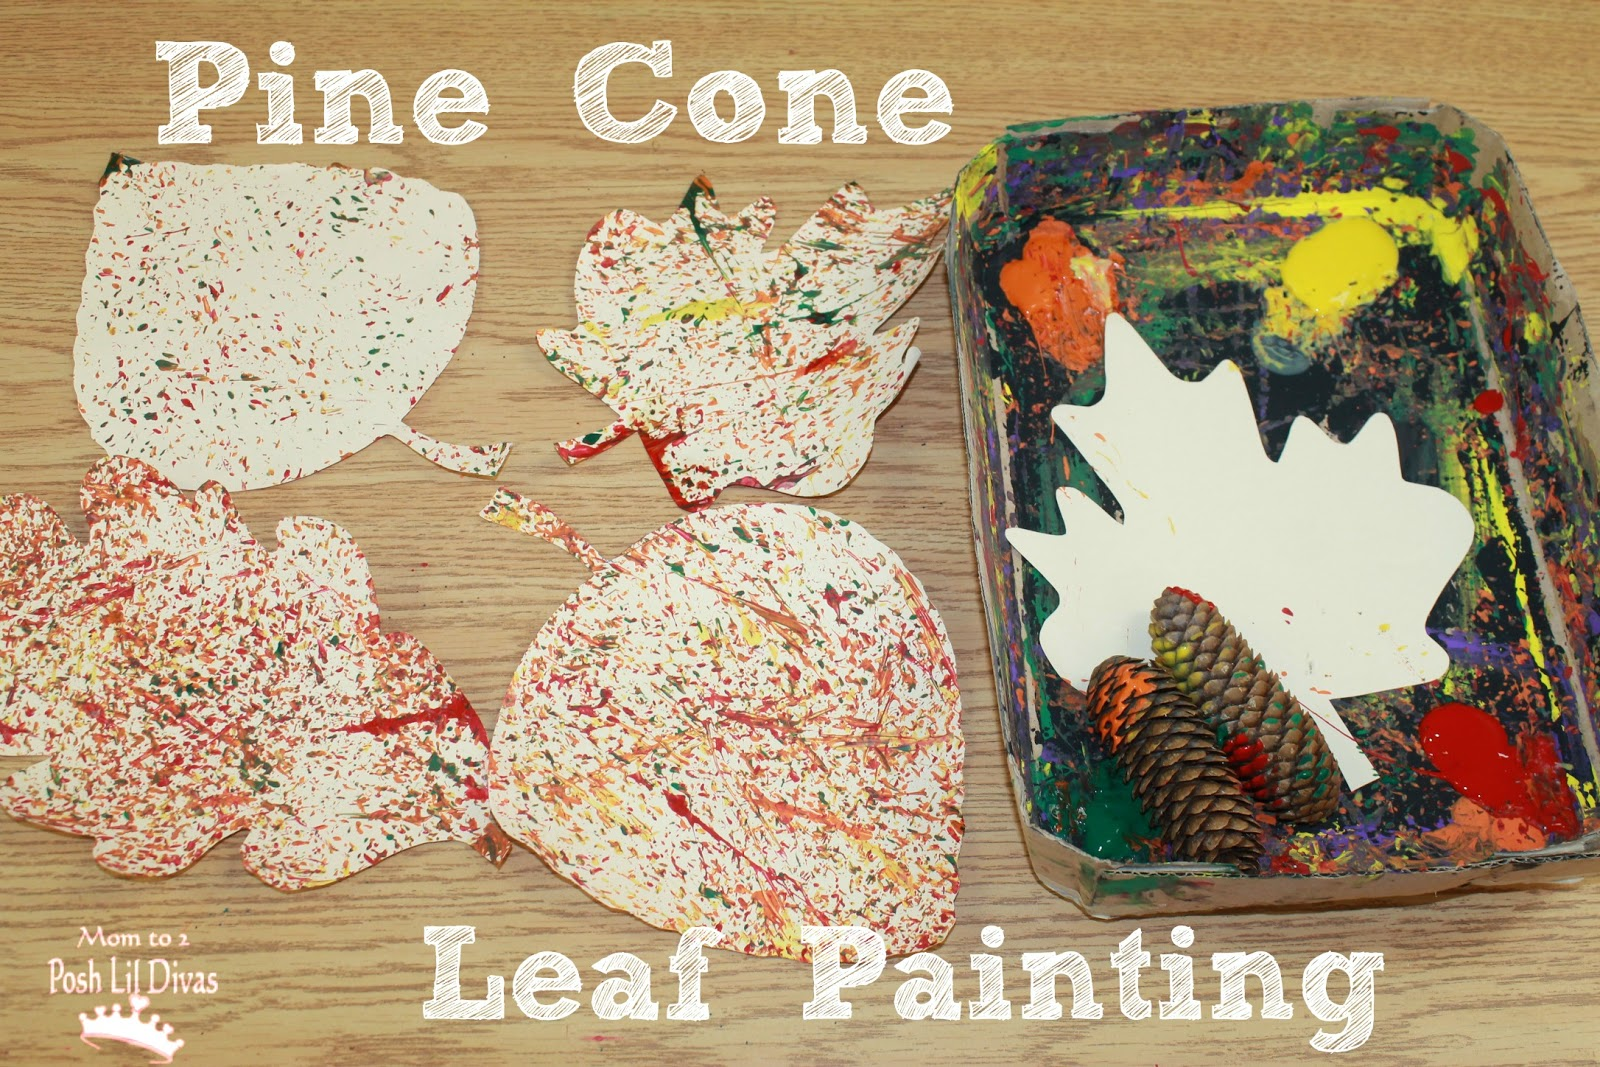 Pine cone leaf painting for Pine cone art projects